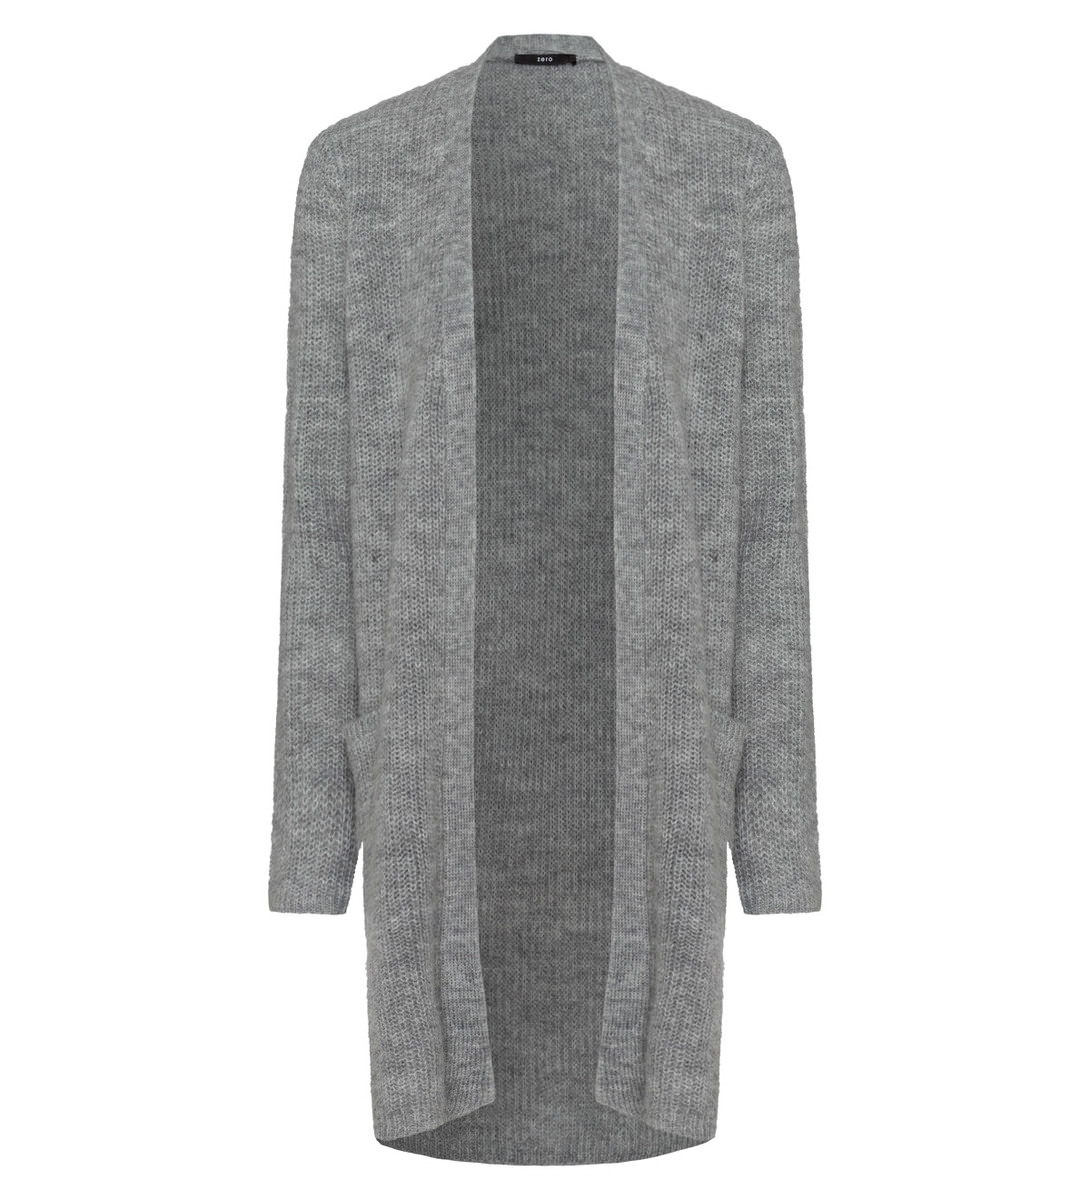 Strickjacke im unifarbenen Design in stone grey